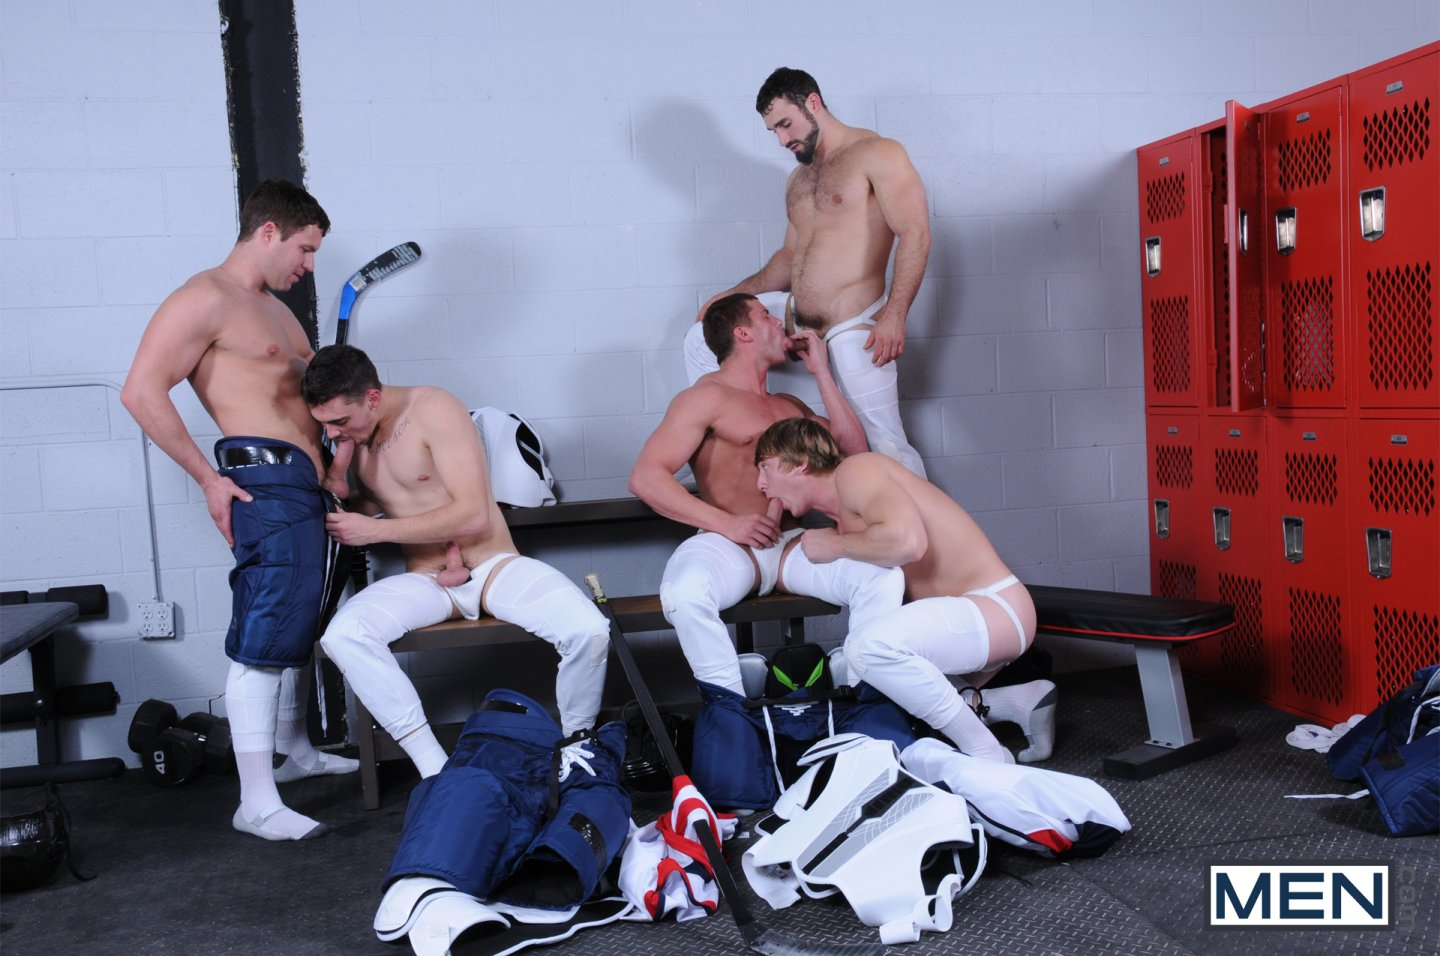 image Straight guys group jerk party gay he got